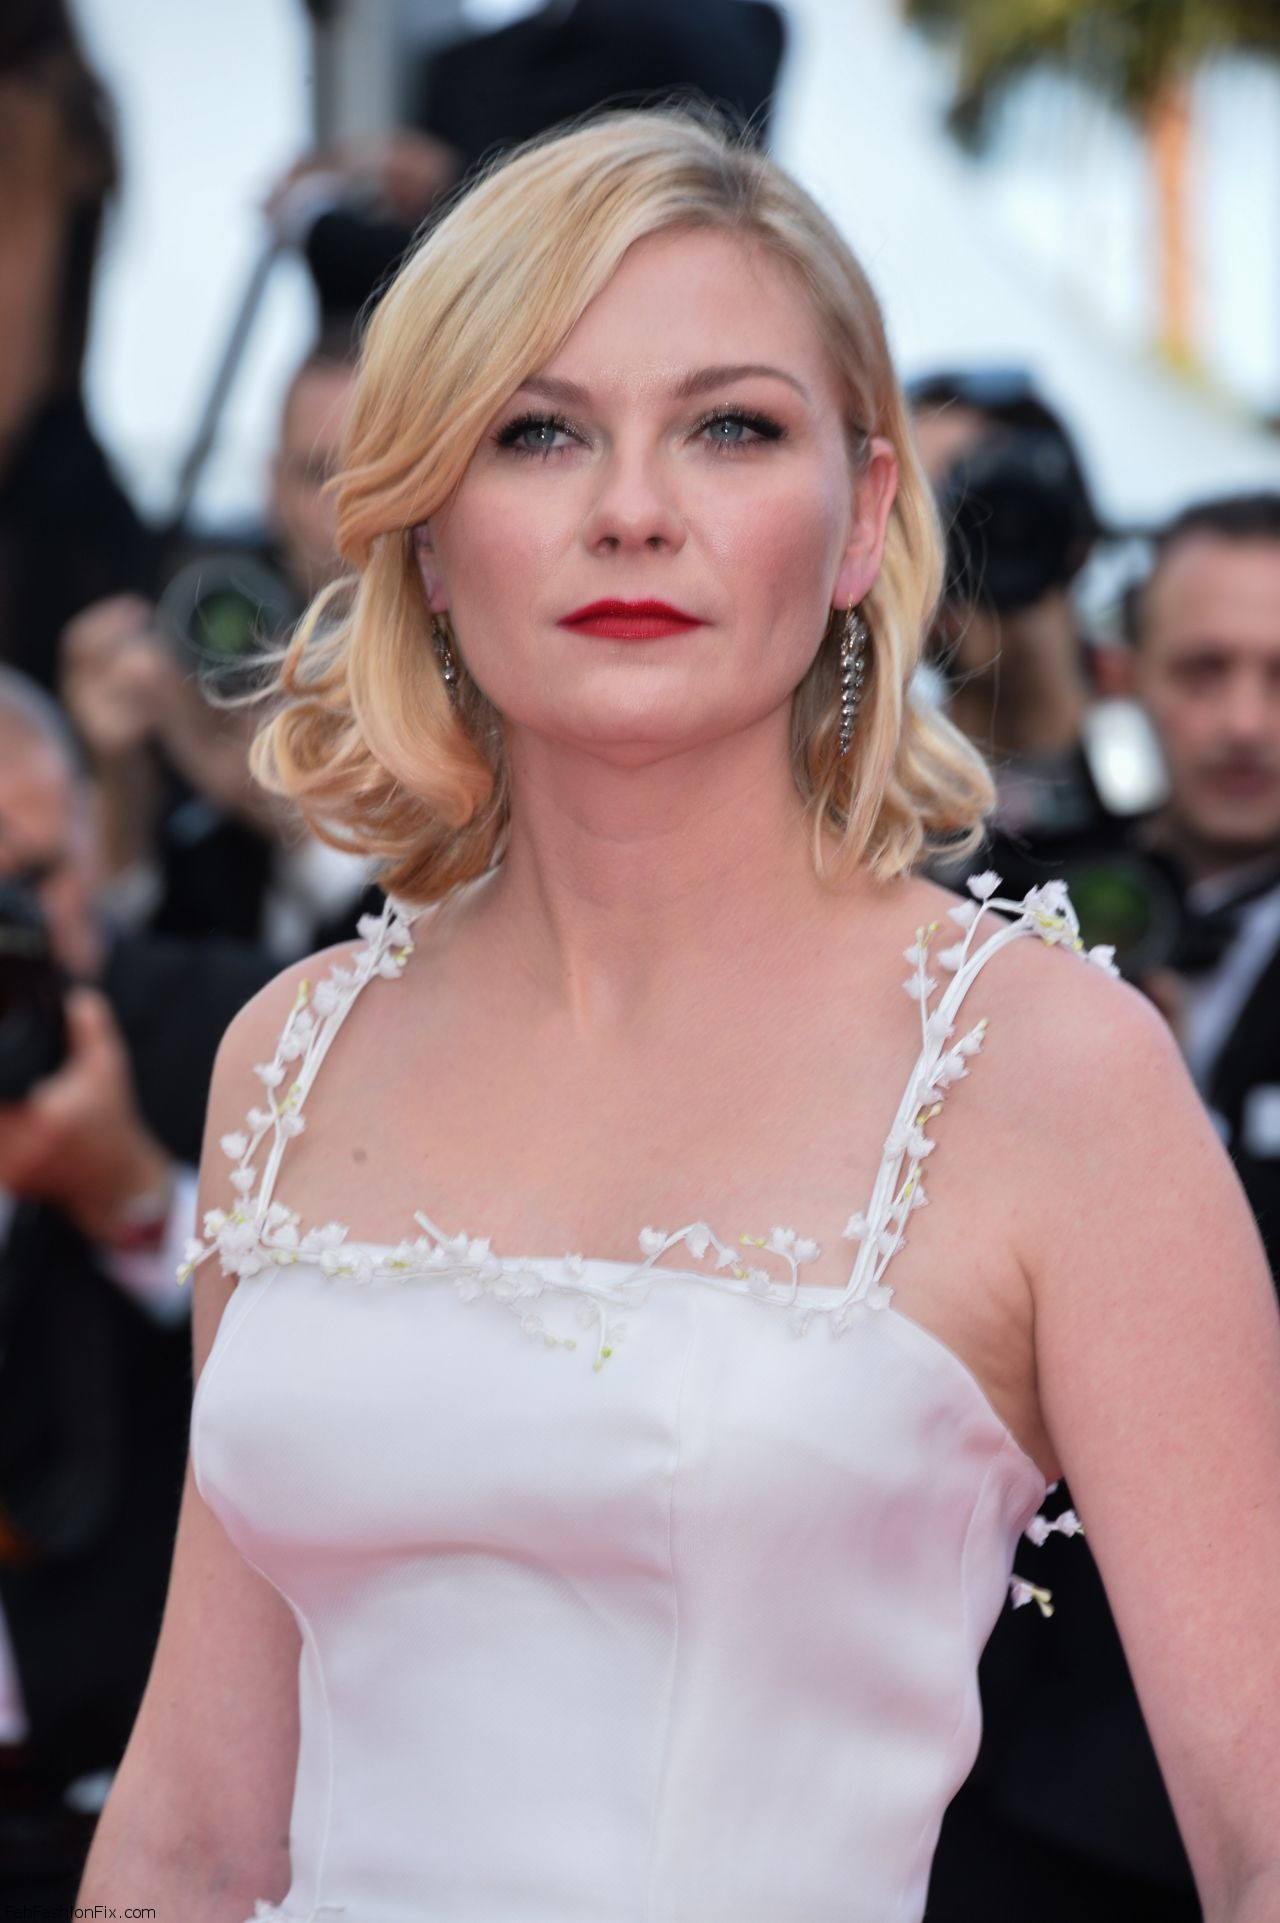 kirsten-dunst-the-loving-premiere-at-69th-cannes-film-festival-5-16-2016-2